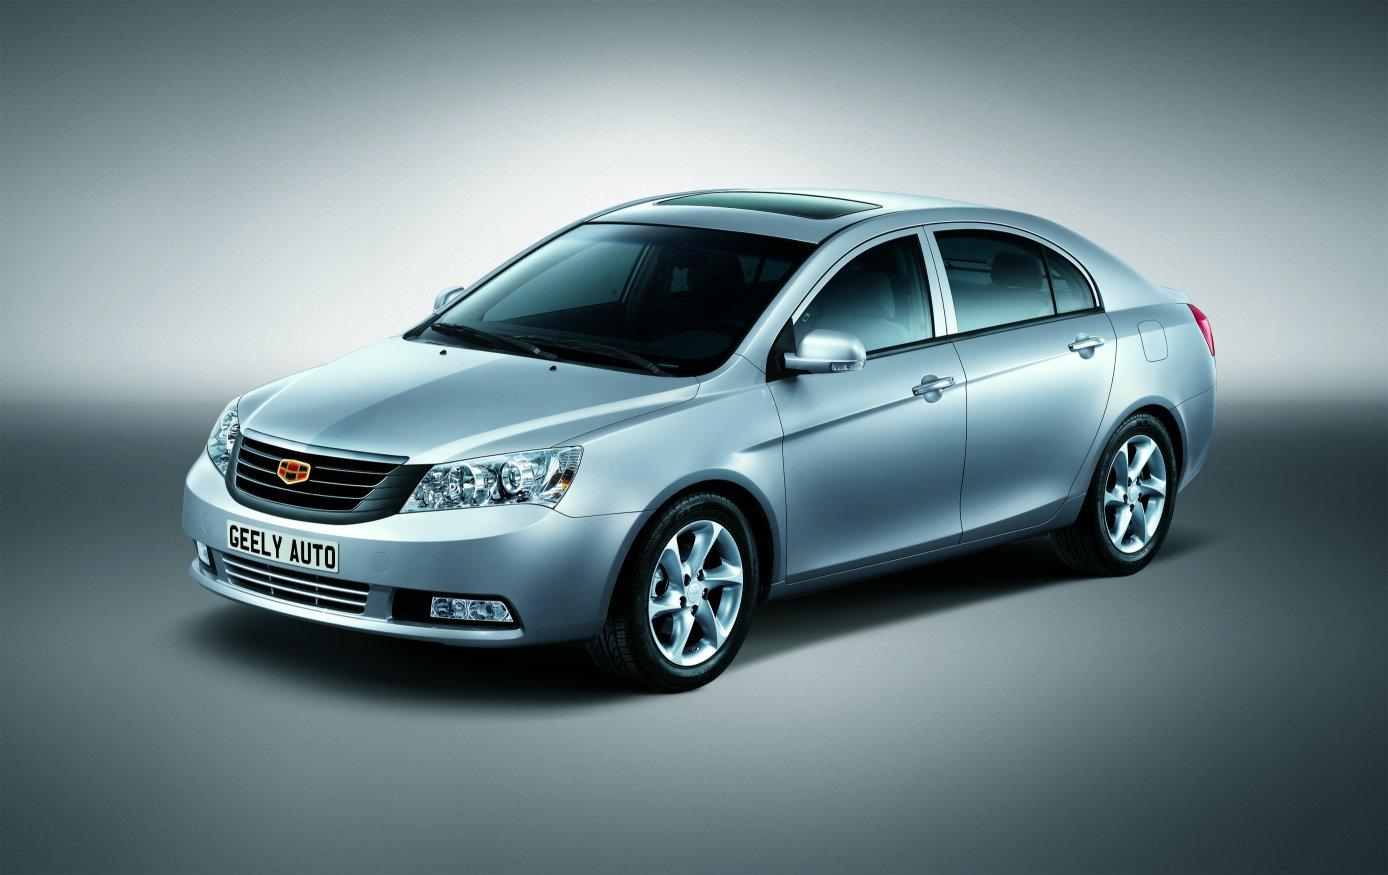 Cool Car Wallpapers: Geely Cars 2013